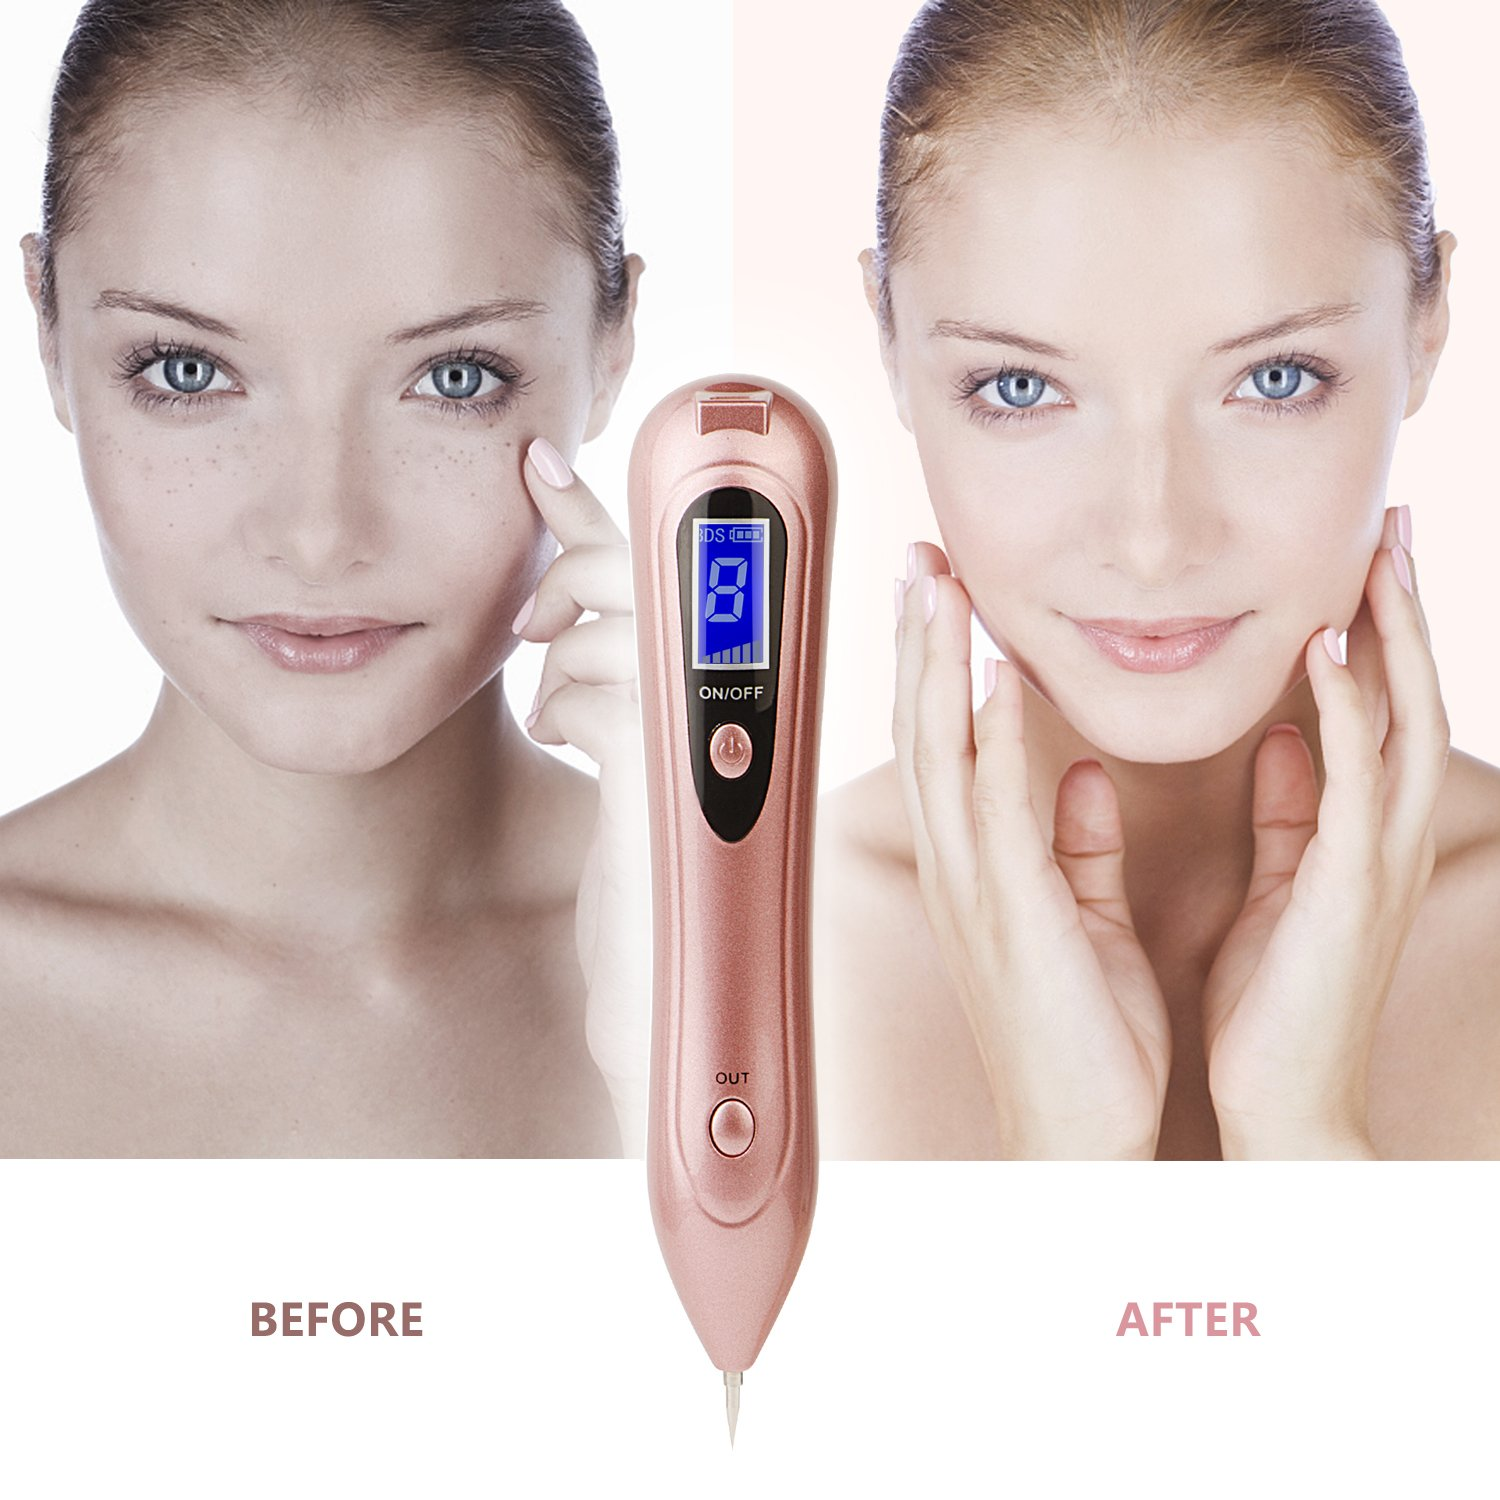 Spot Eraser Pro for Freckles, Warts, Age Spots, Tattoo, Nevus, Birthmark, Skin Pigmentation - No Bleeding & Rapid Healing, Portable Safety USB Rechargeable by Positivelife (Image #3)